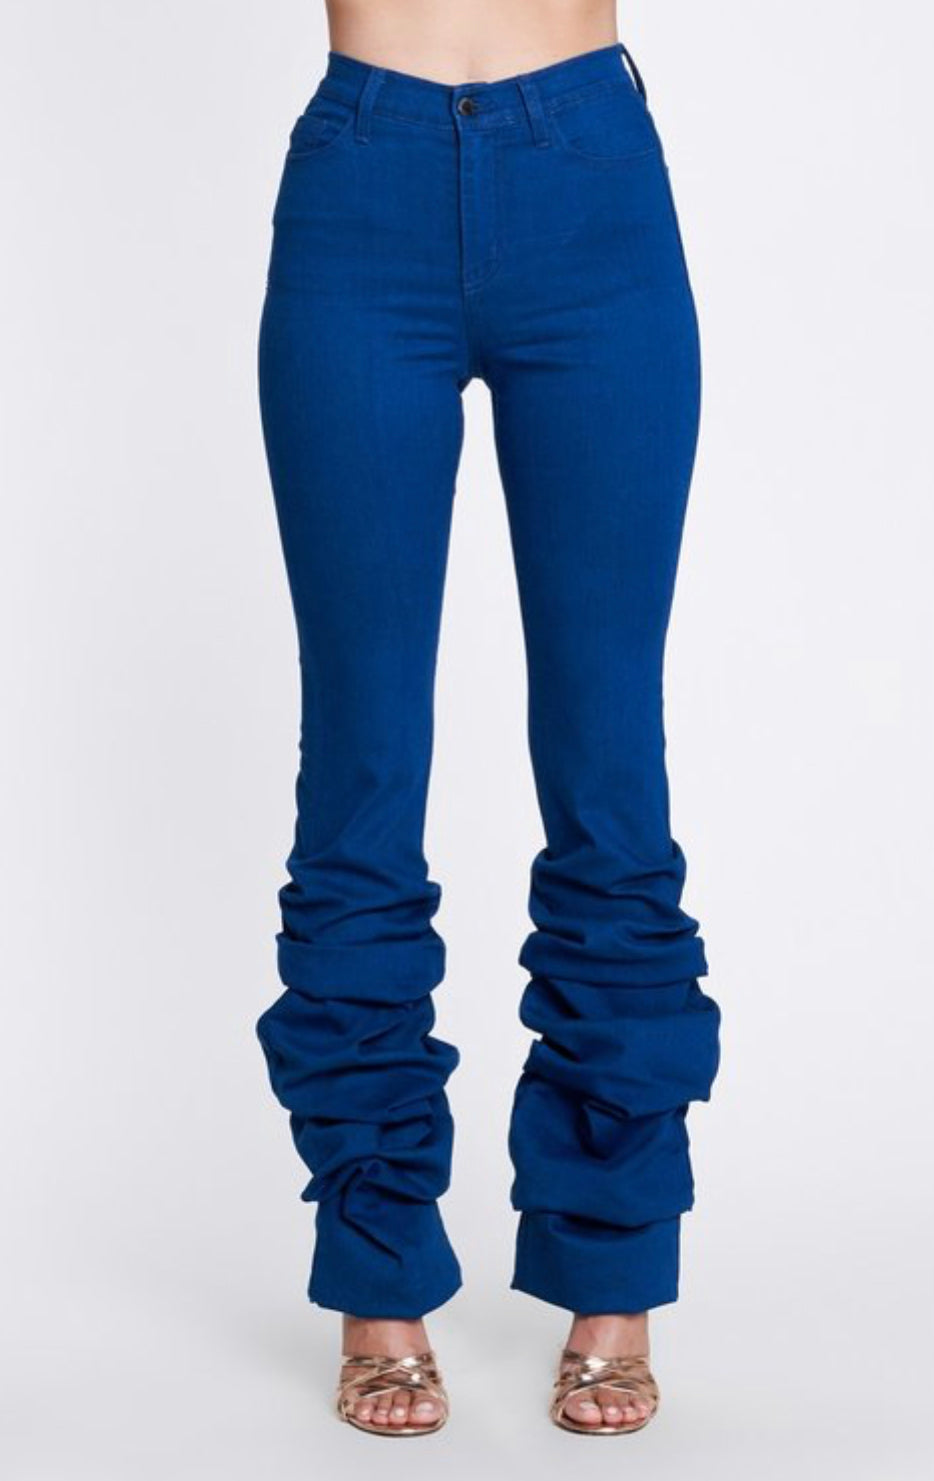 Venice Blue HIgh Waist Stacked Leg Denim Jeans - JEANS